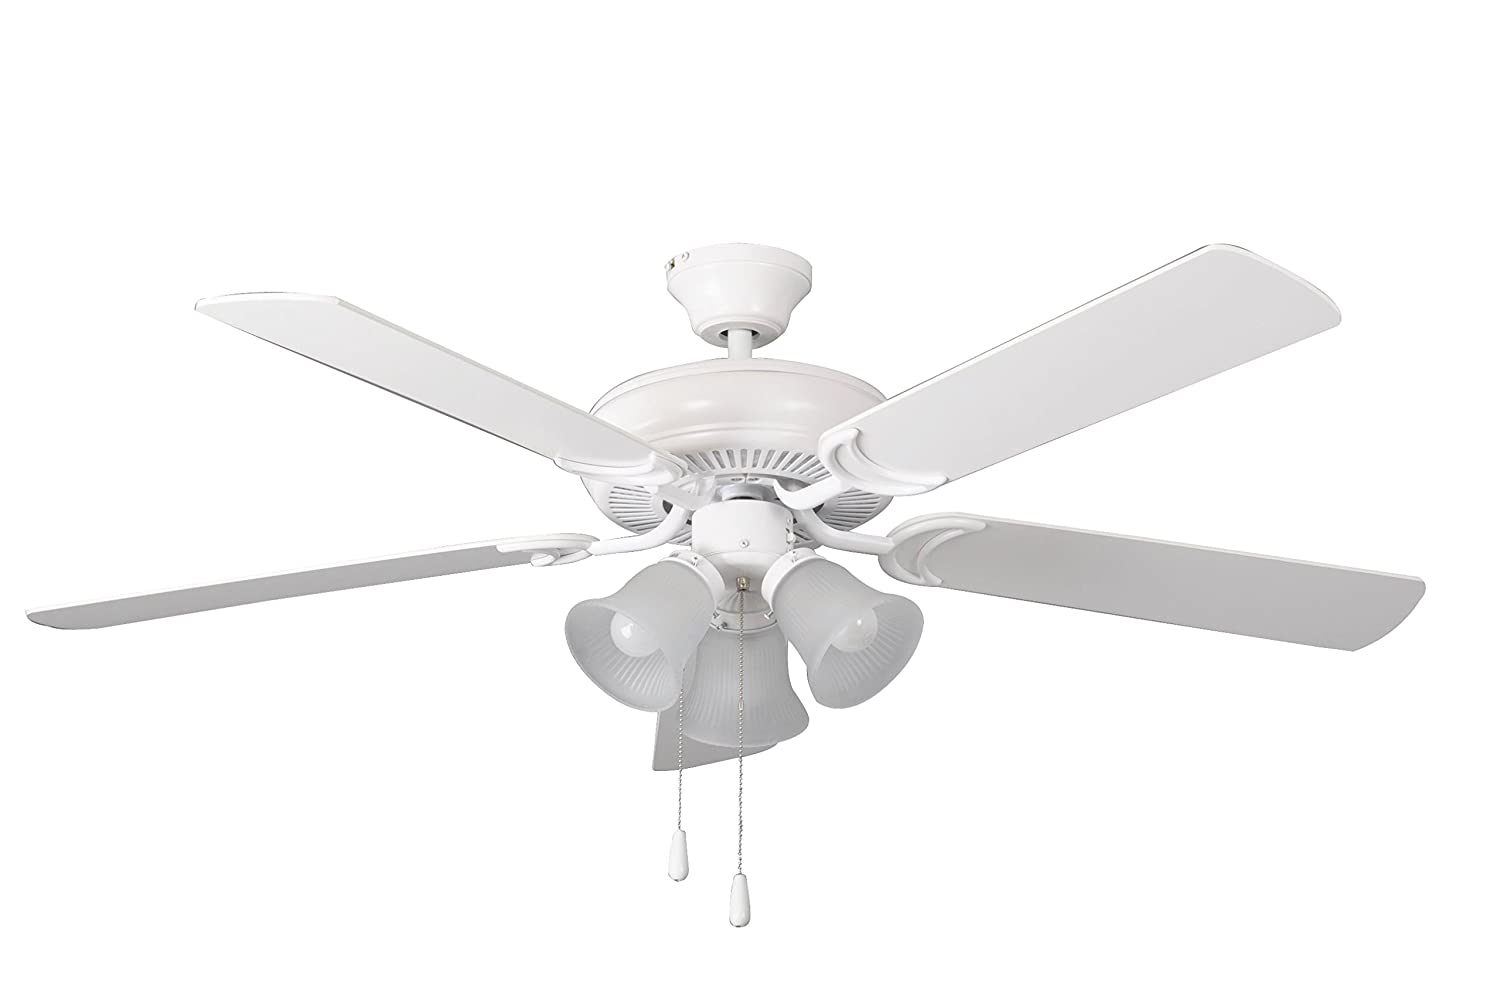 60 Inch Ceiling Fan With Light Kit Full Size Of 30 Flush